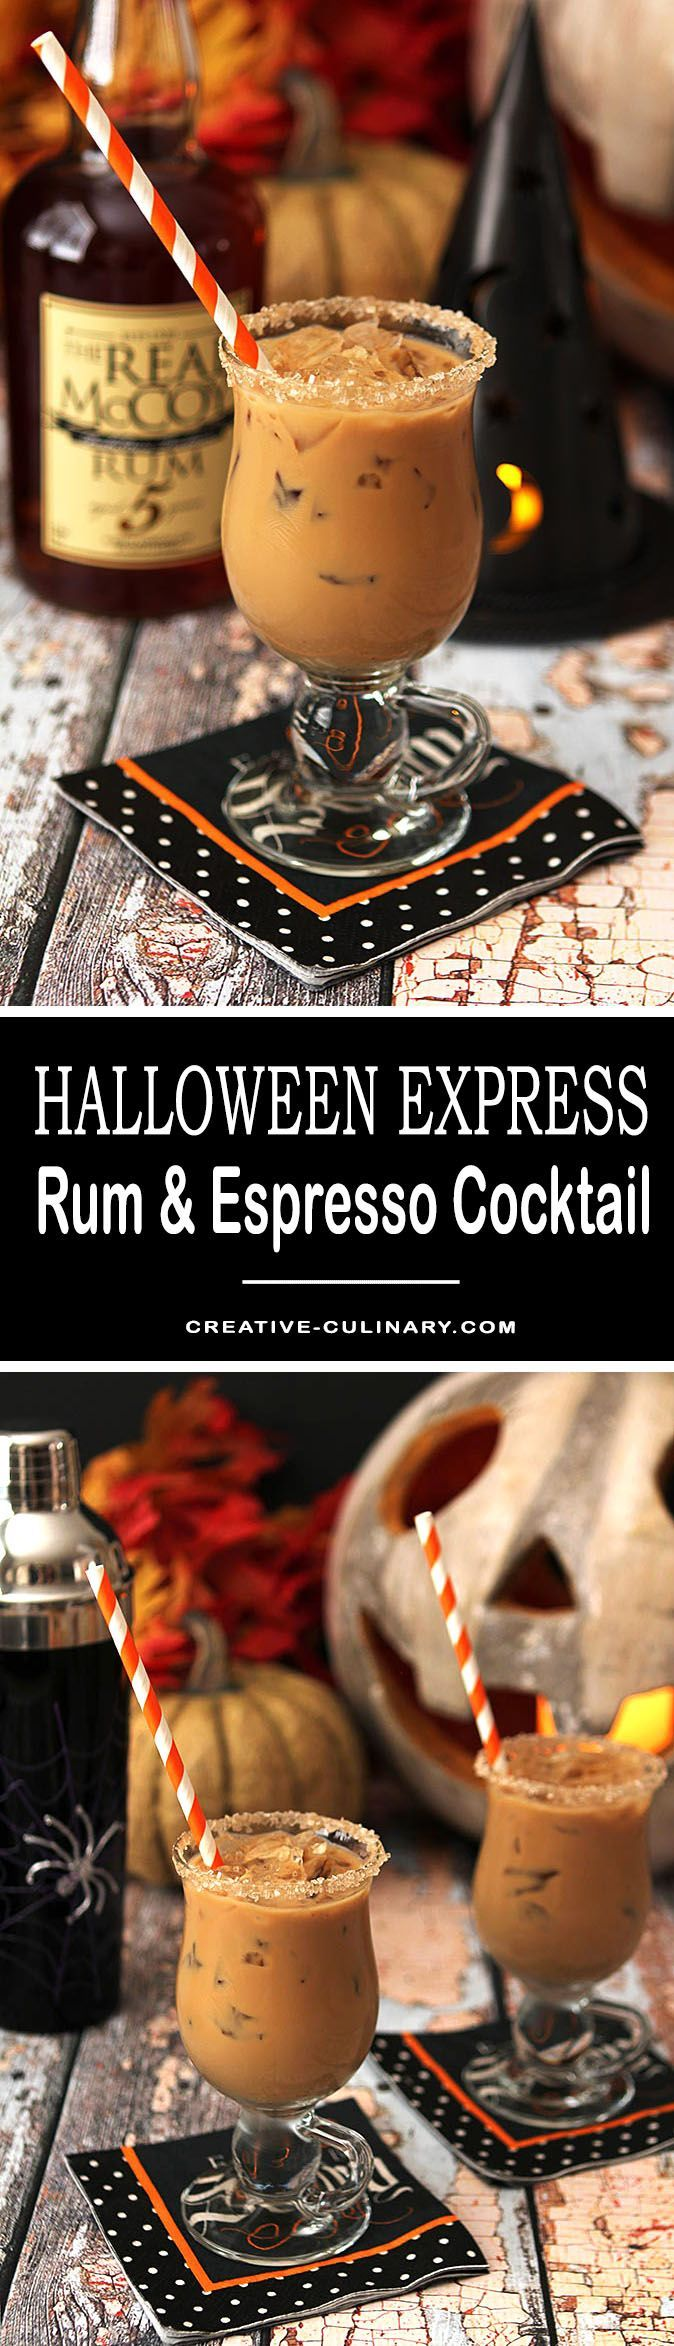 Combine Rum and Espresso with some Maple Syrup and you'll be off and running with The Halloween Express! via @creativculinary